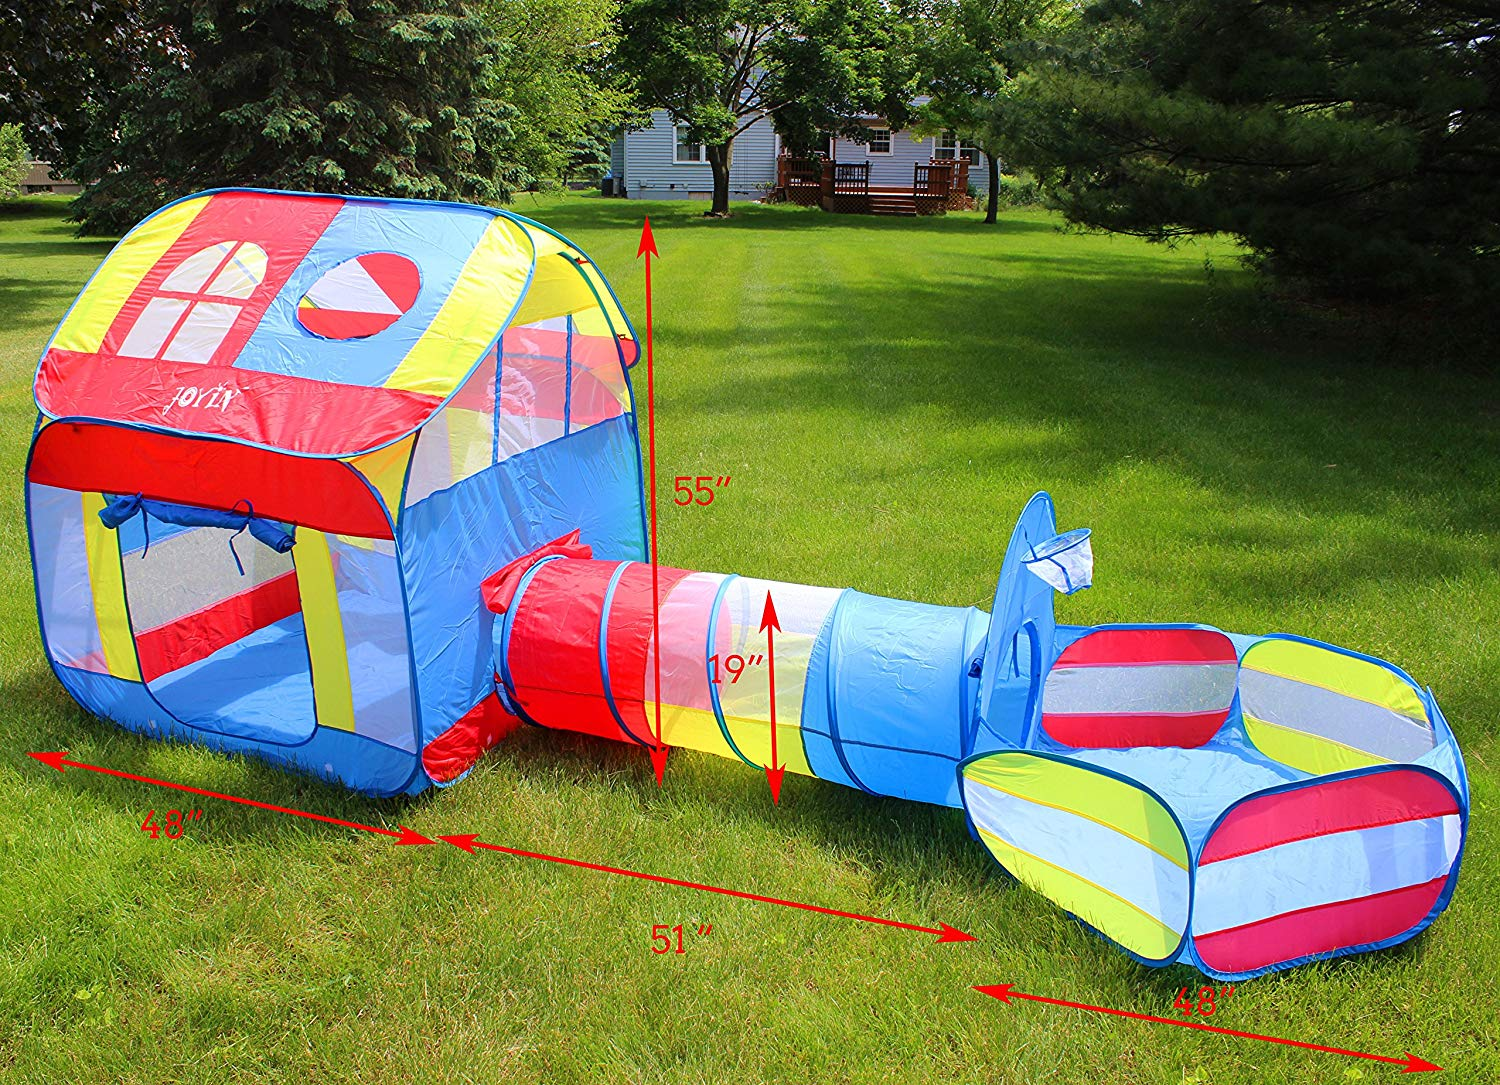 JOYIN 8 in 1 Pop-up Play Tents and Tunnels